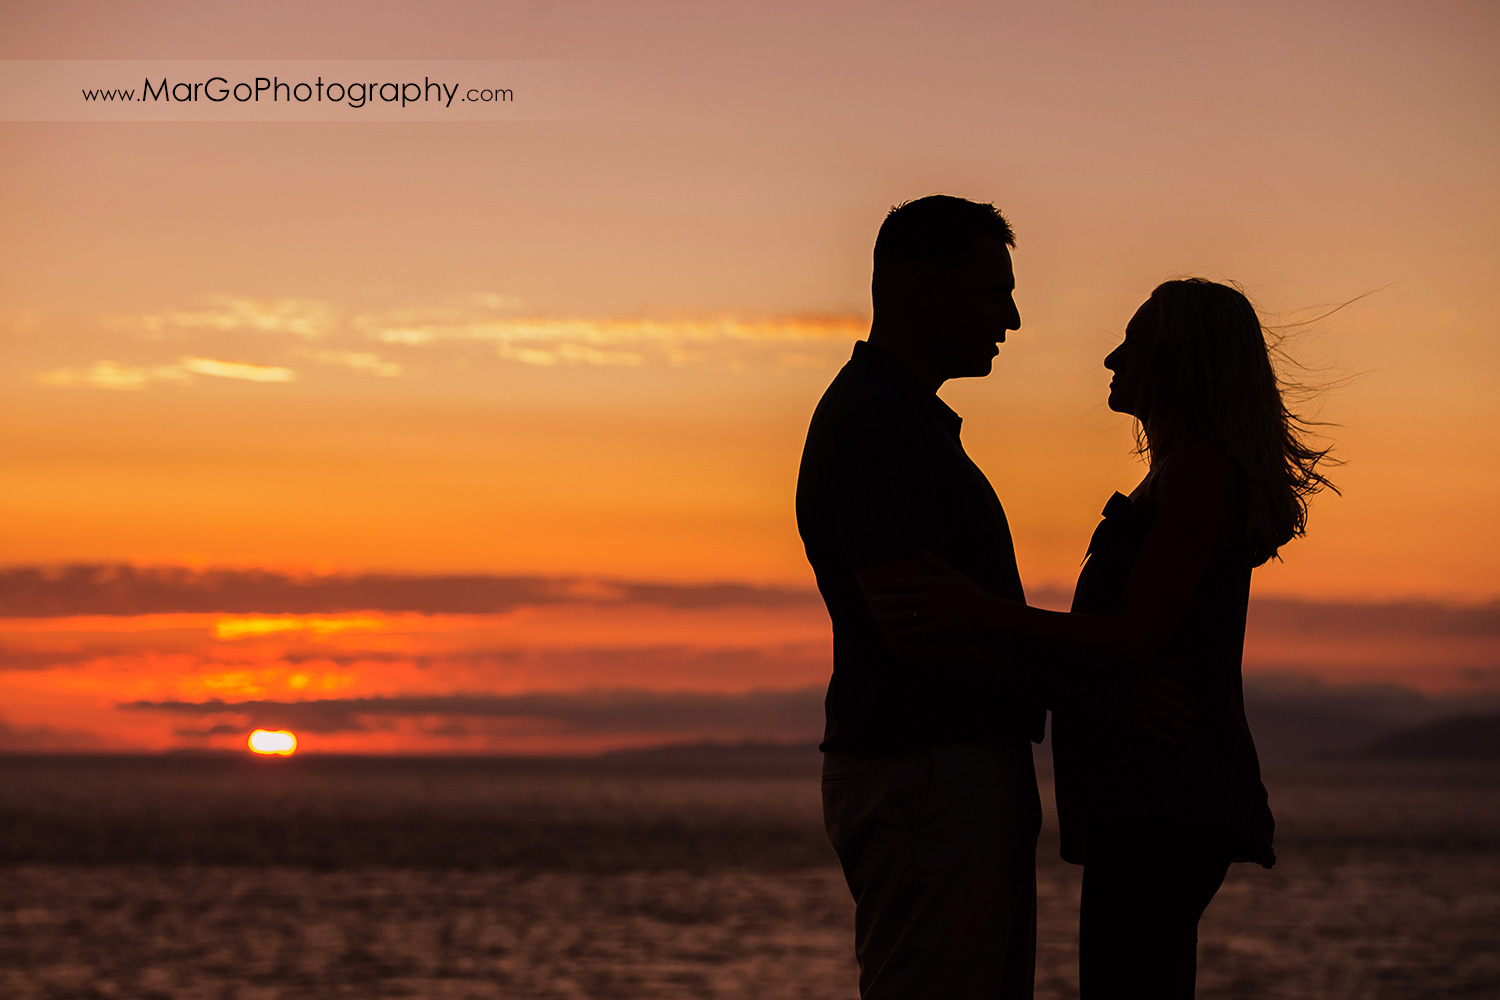 sunset silhouette of man and woman looking at each other during engagement session at San Francisco Lands End